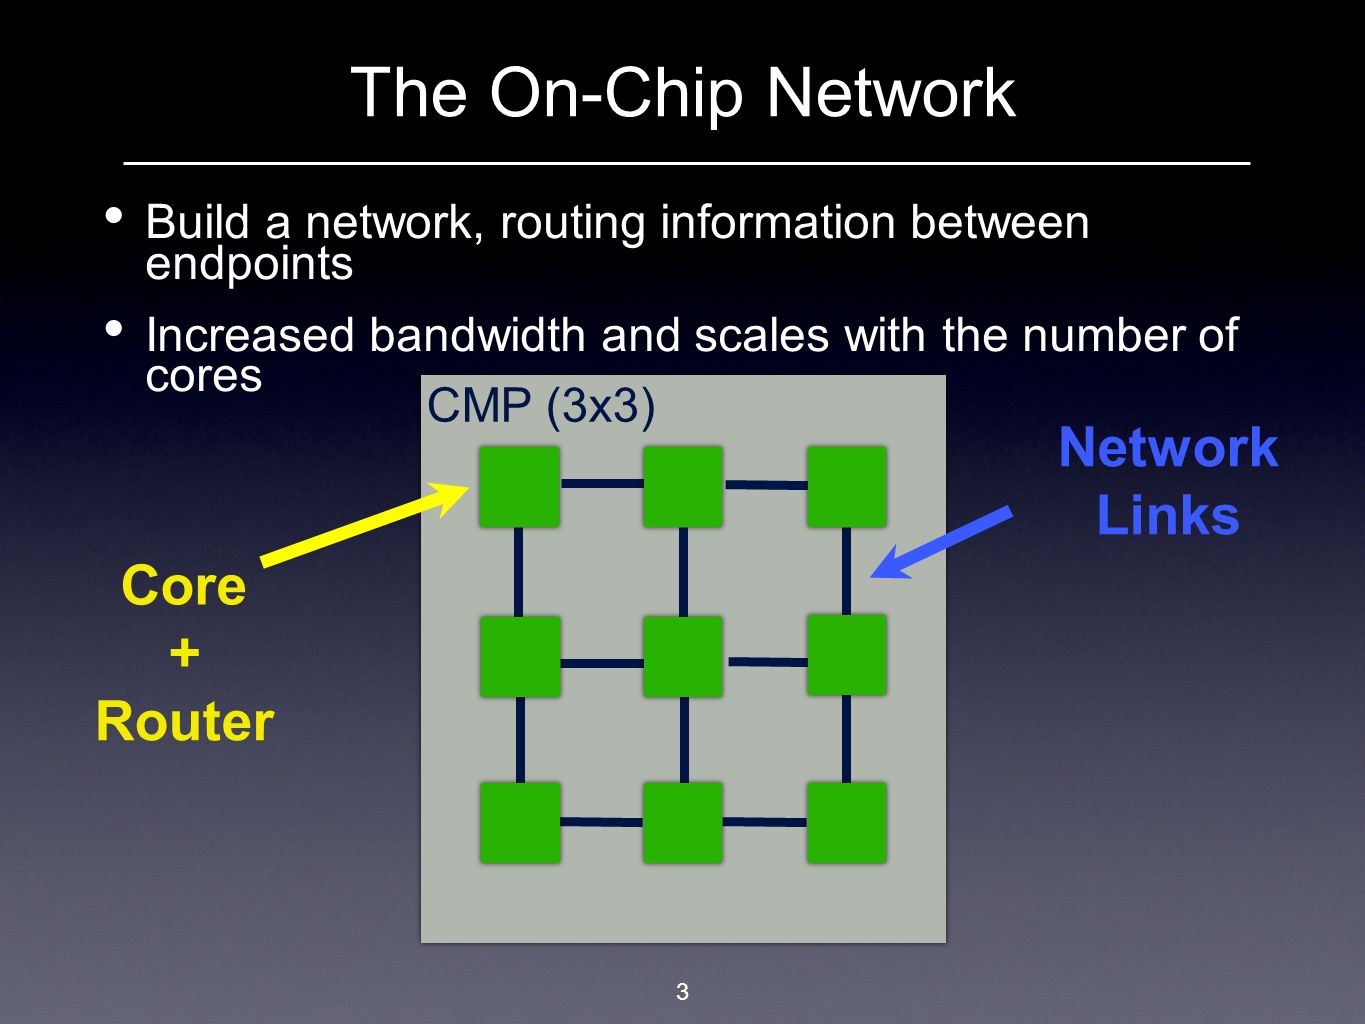 3 Build a network, routing information between endpoints Increased bandwidth and scales with the number of cores The On-Chip Network CMP (3x3) Network